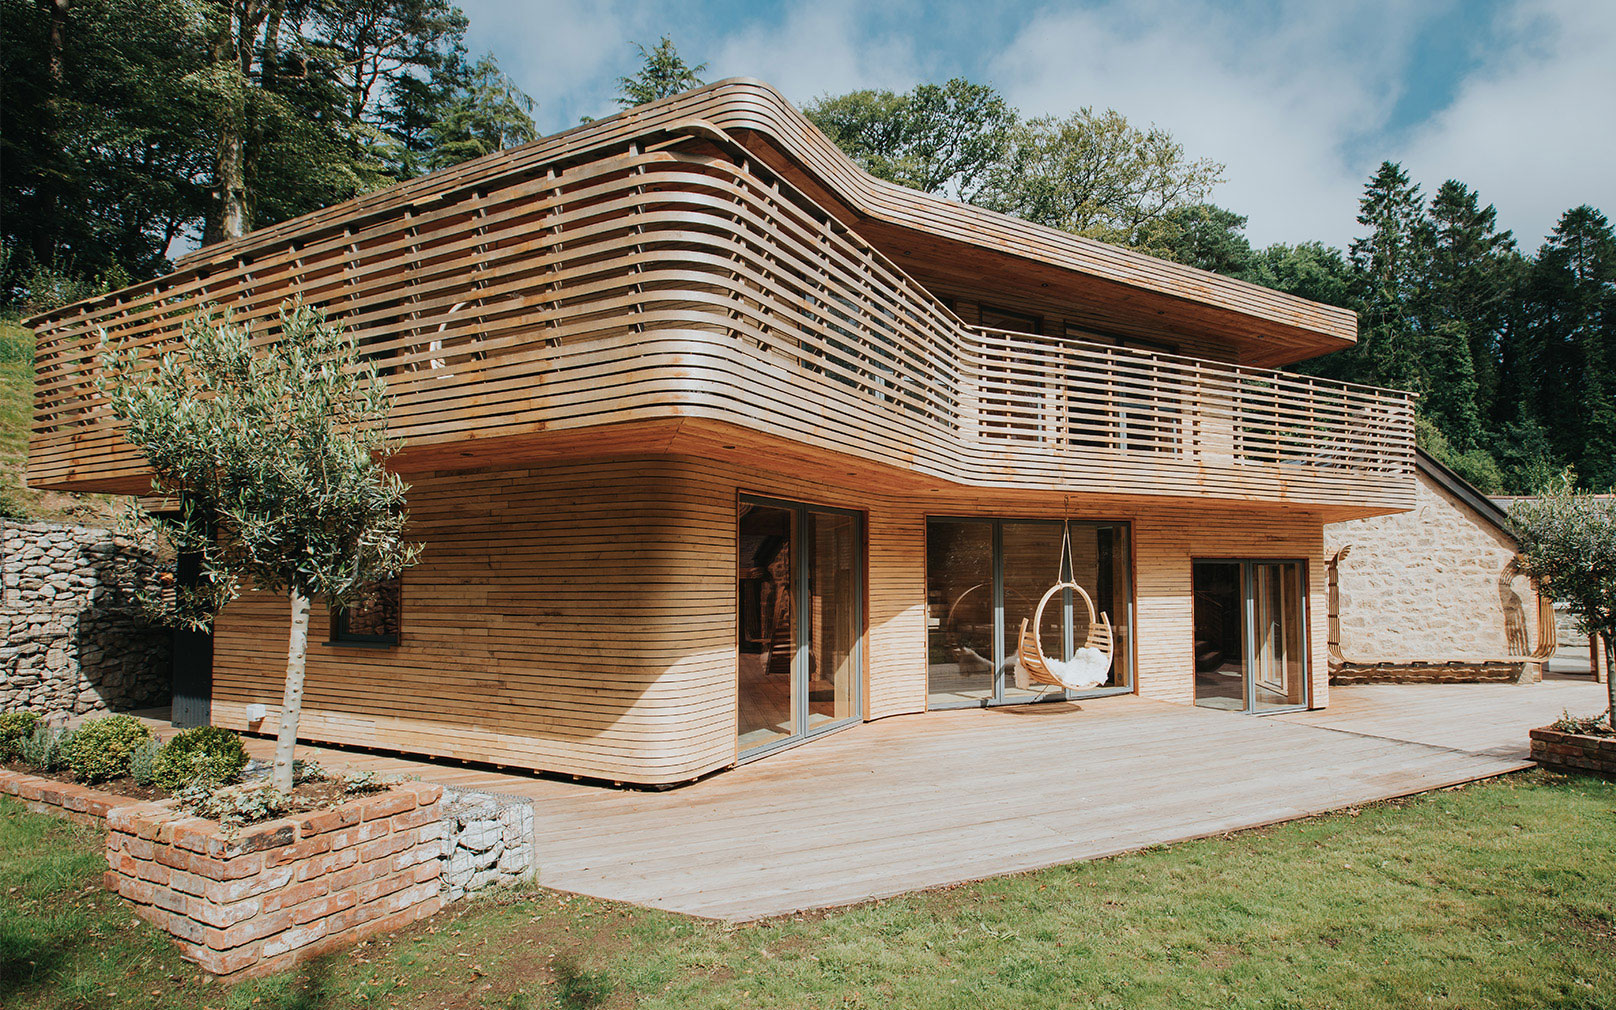 Tom Raffield's house of steam-bent wood